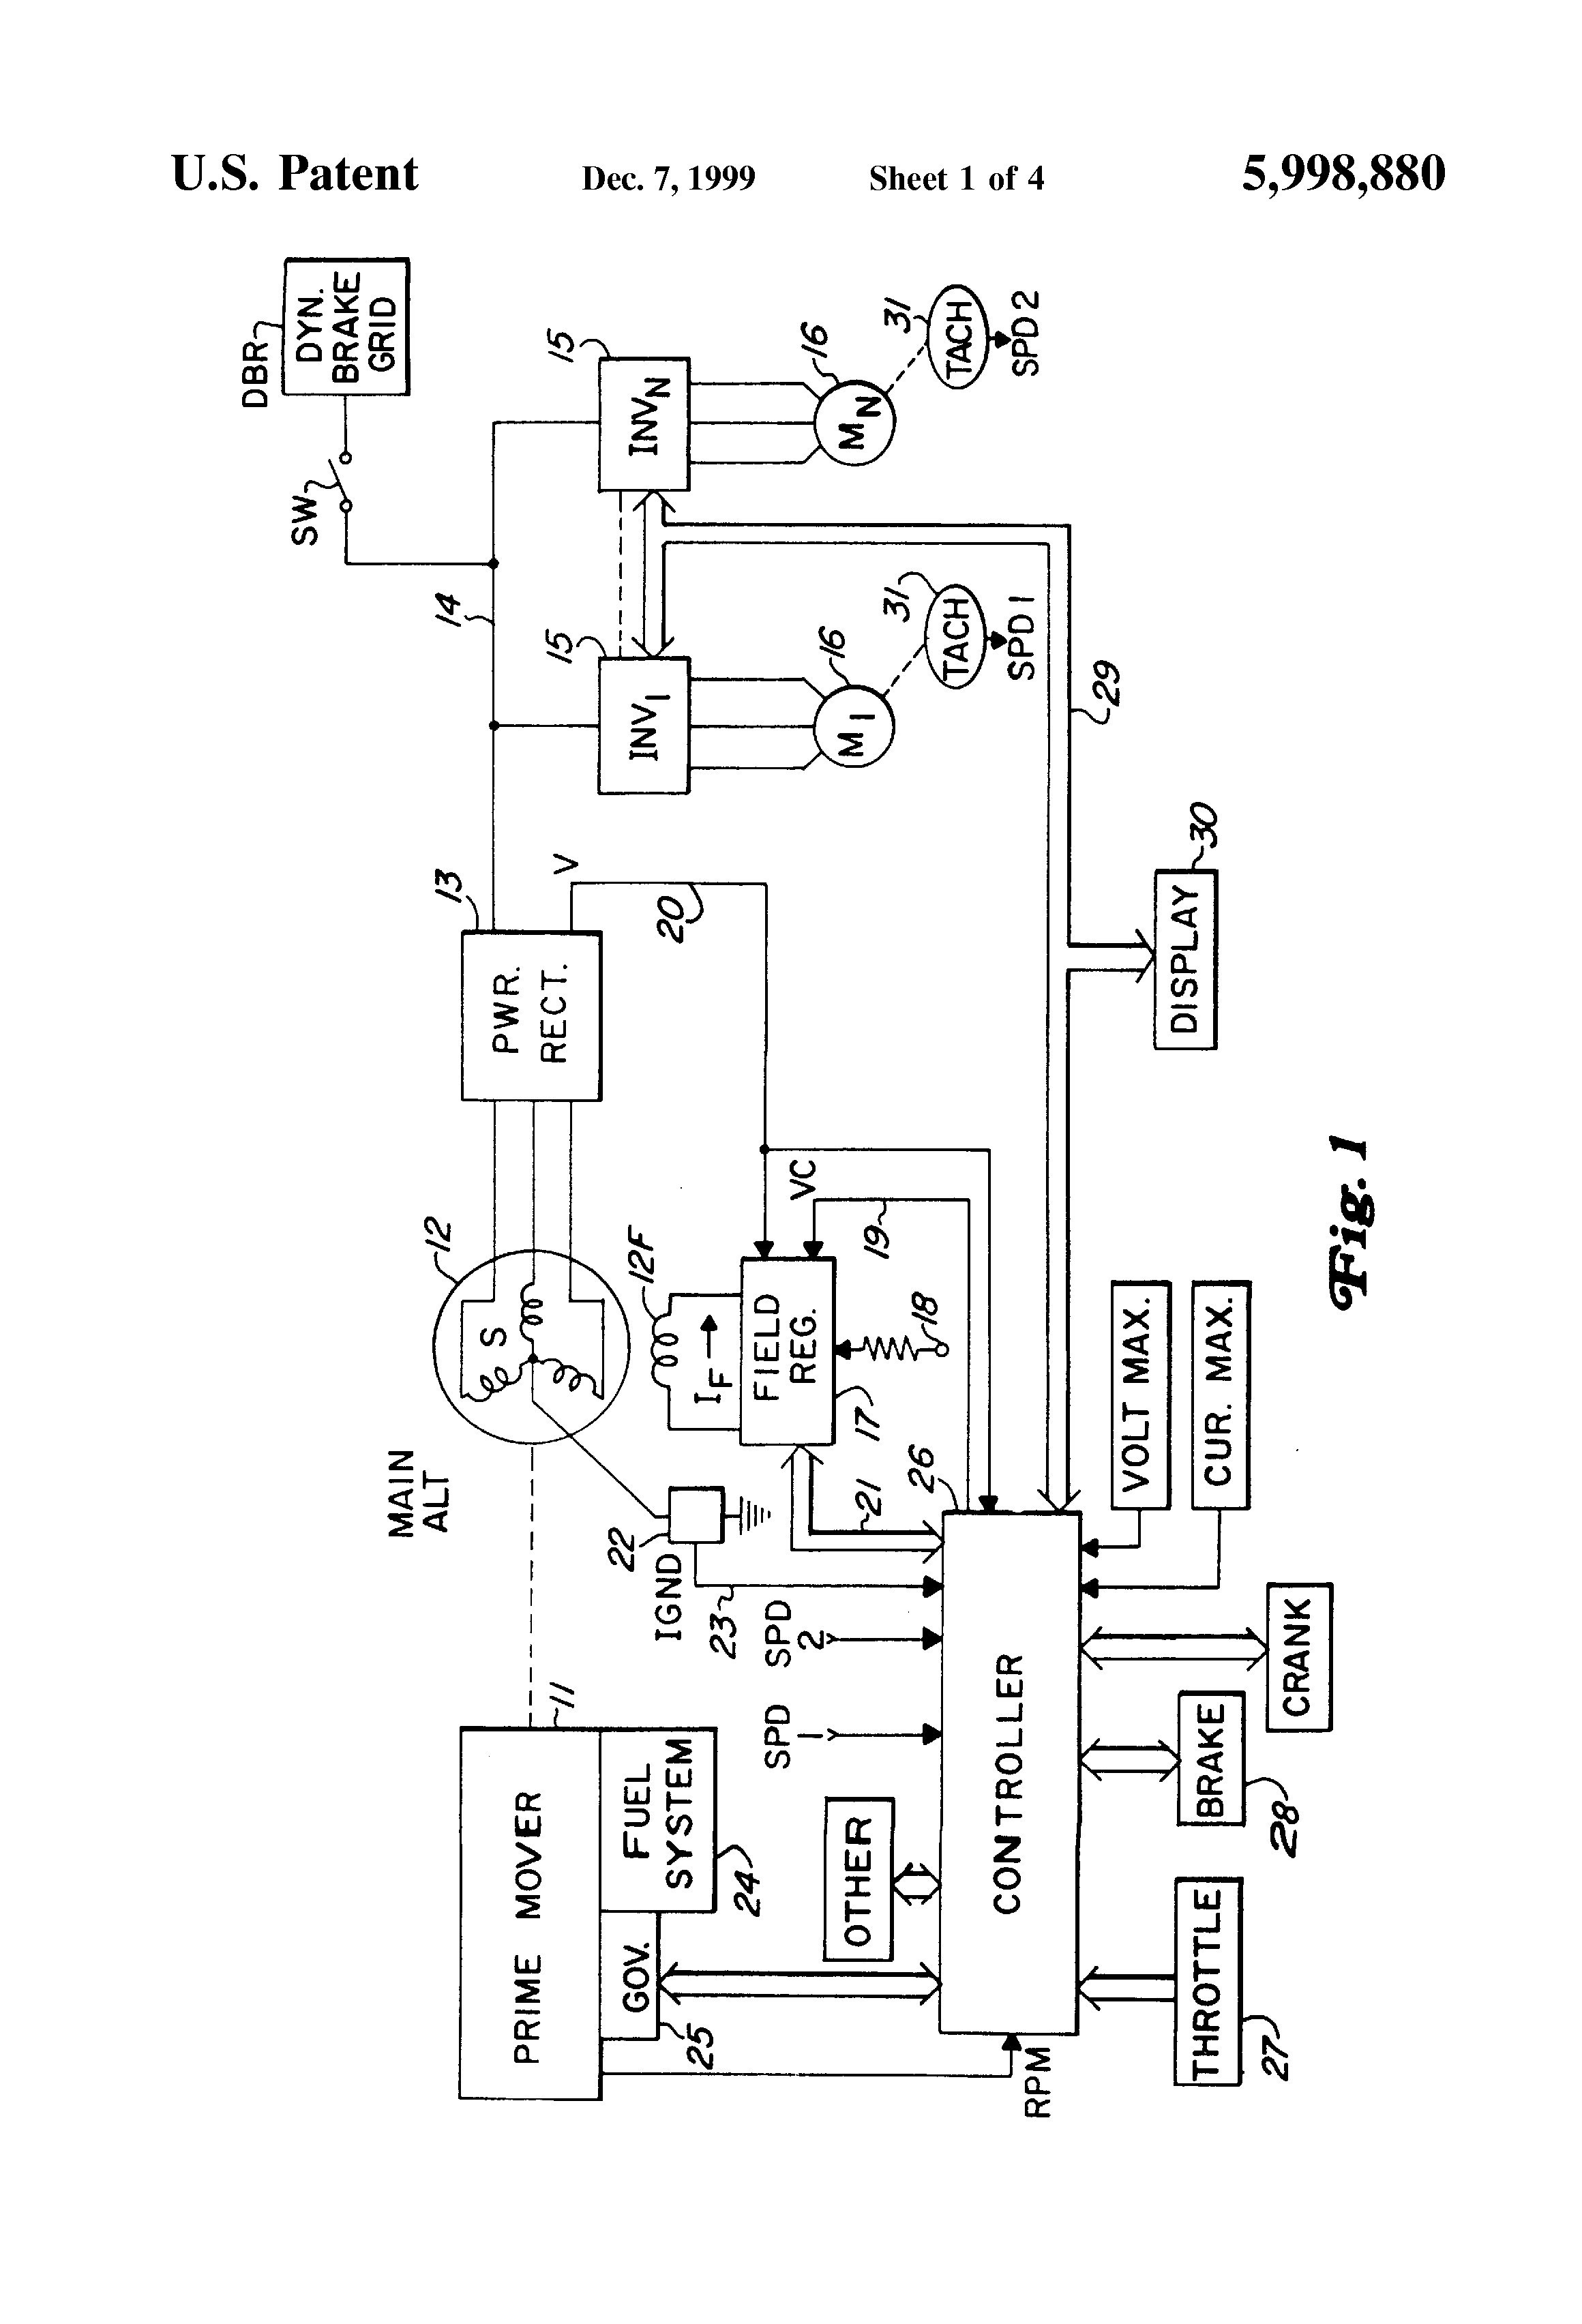 Sew 12 Lead Motor Wiring Diagram Trusted Schematics Collection Parrot Ck3100 Pictures Diagrams Eurodrive 208 Volt Schematic 3 Phase Wire